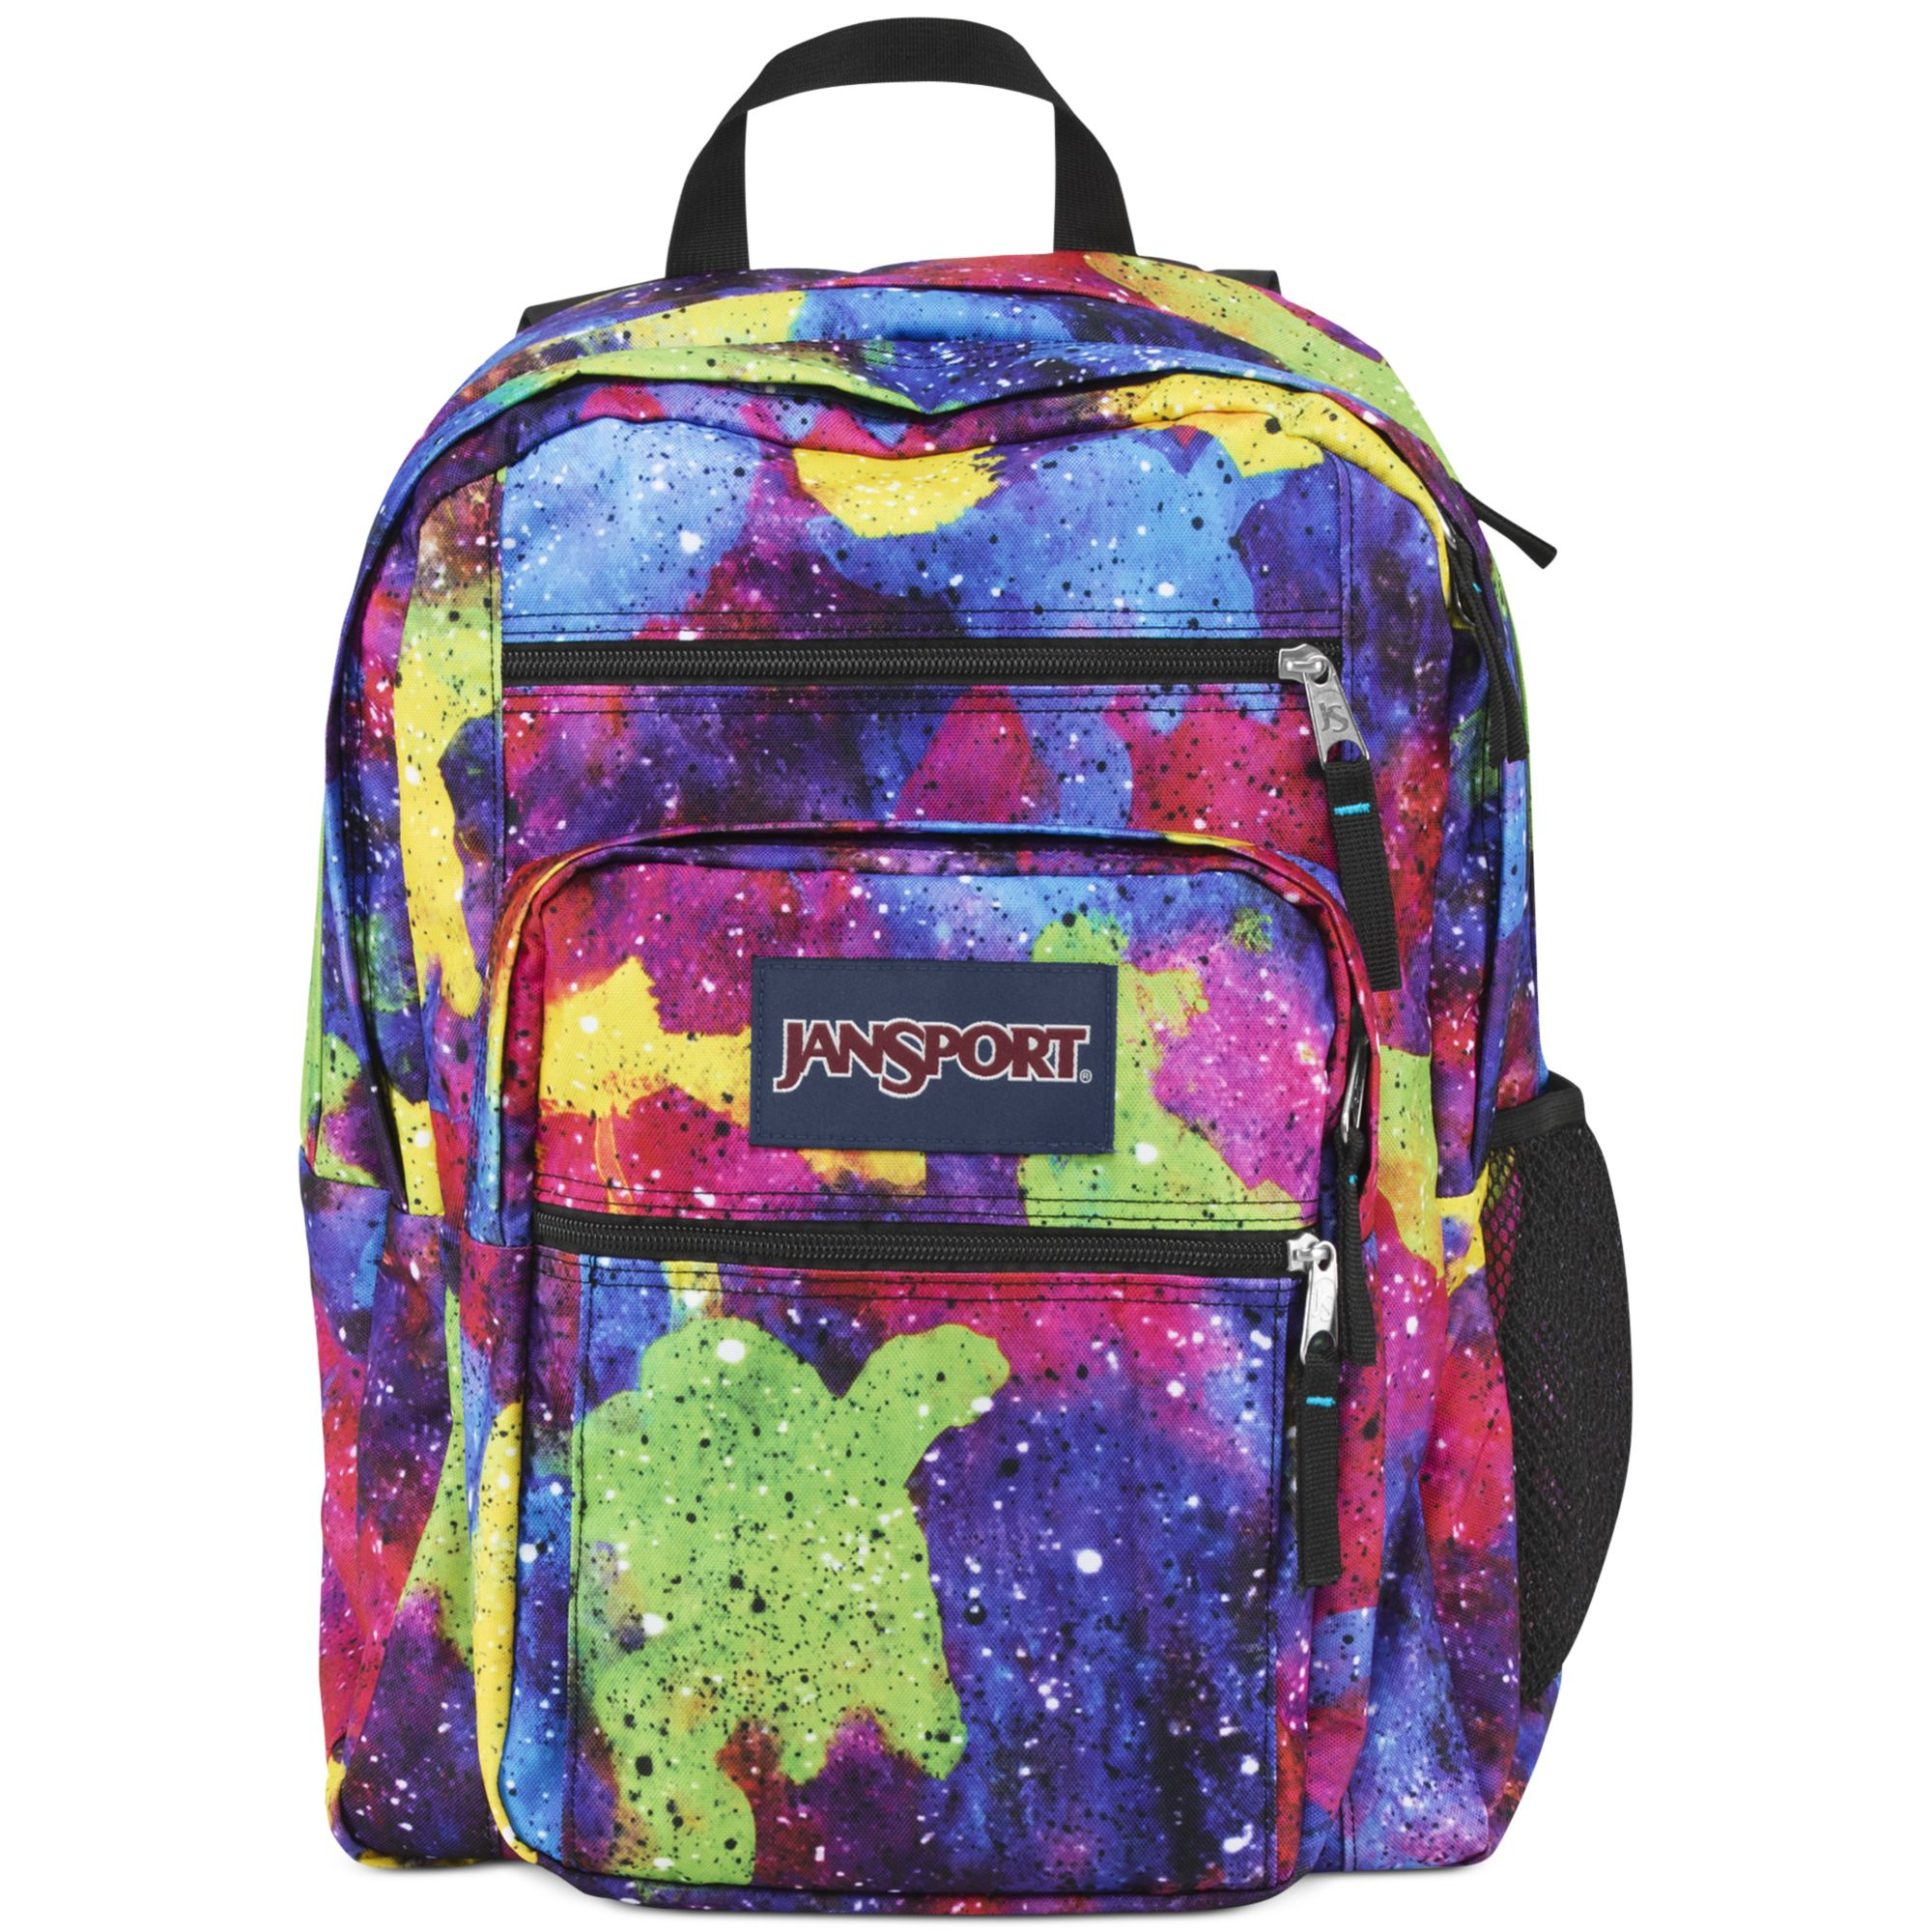 Jansport Galaxy Backpack For Sale - Crazy Backpacks